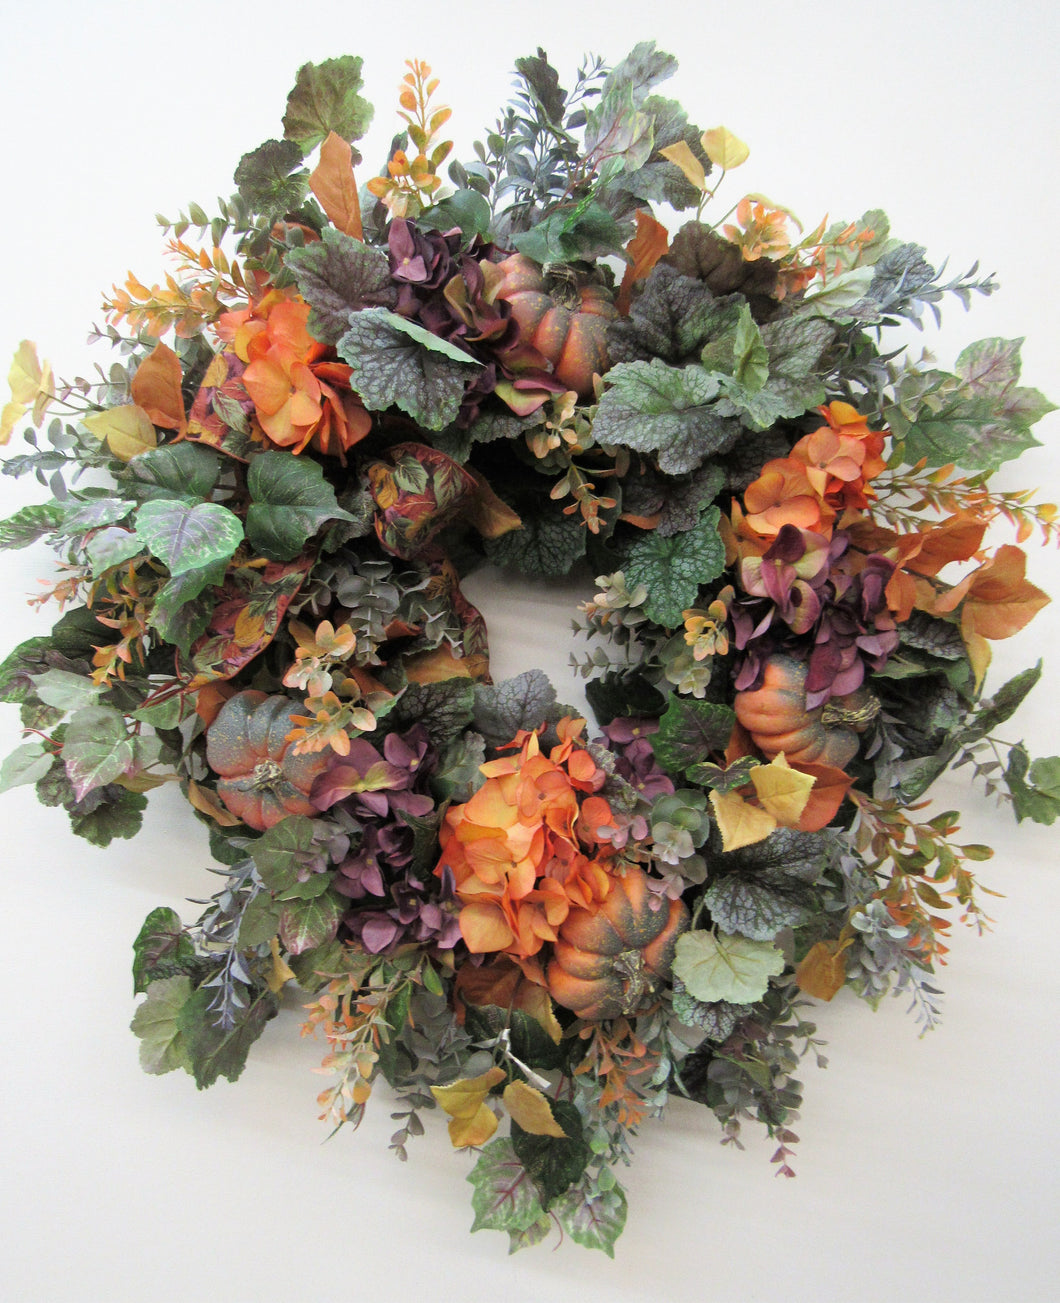 Gallery/ Harv64 - April's Garden Wreath